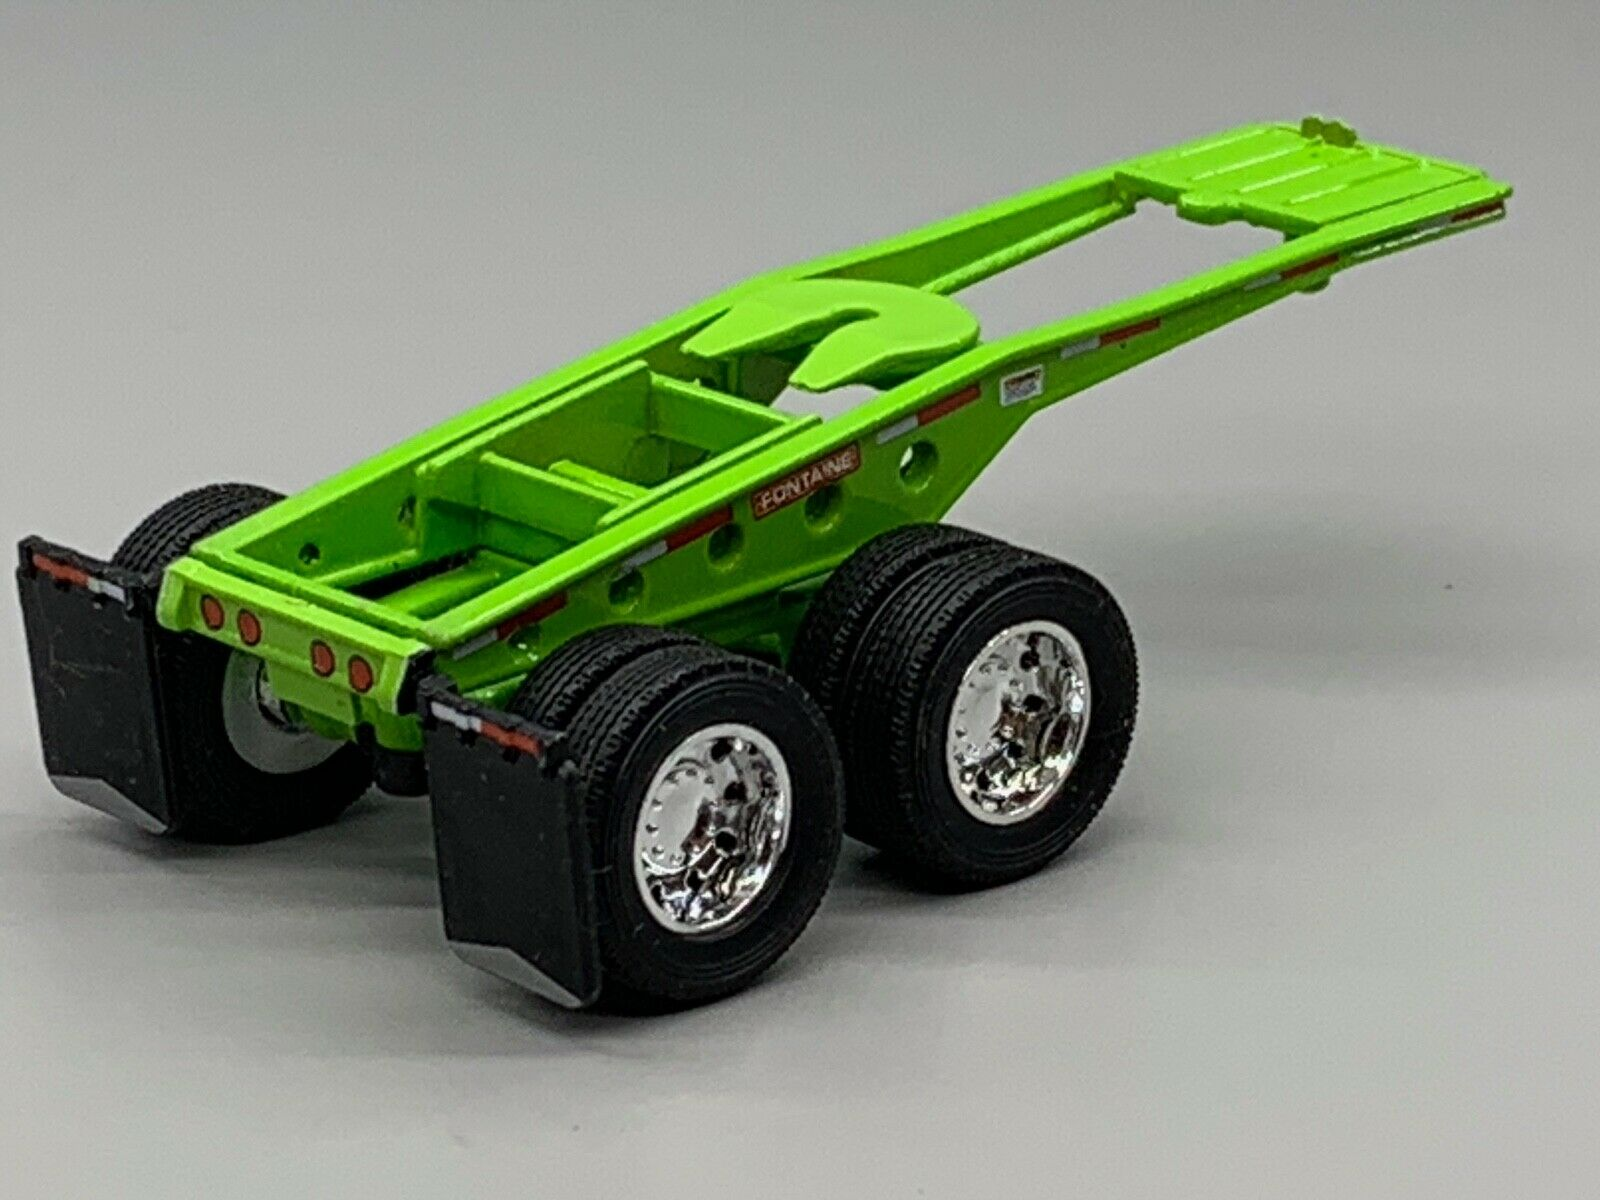 1/64 DCP LIME GREEN FONTAINE MAGNITUDE LOWBOY JEEP